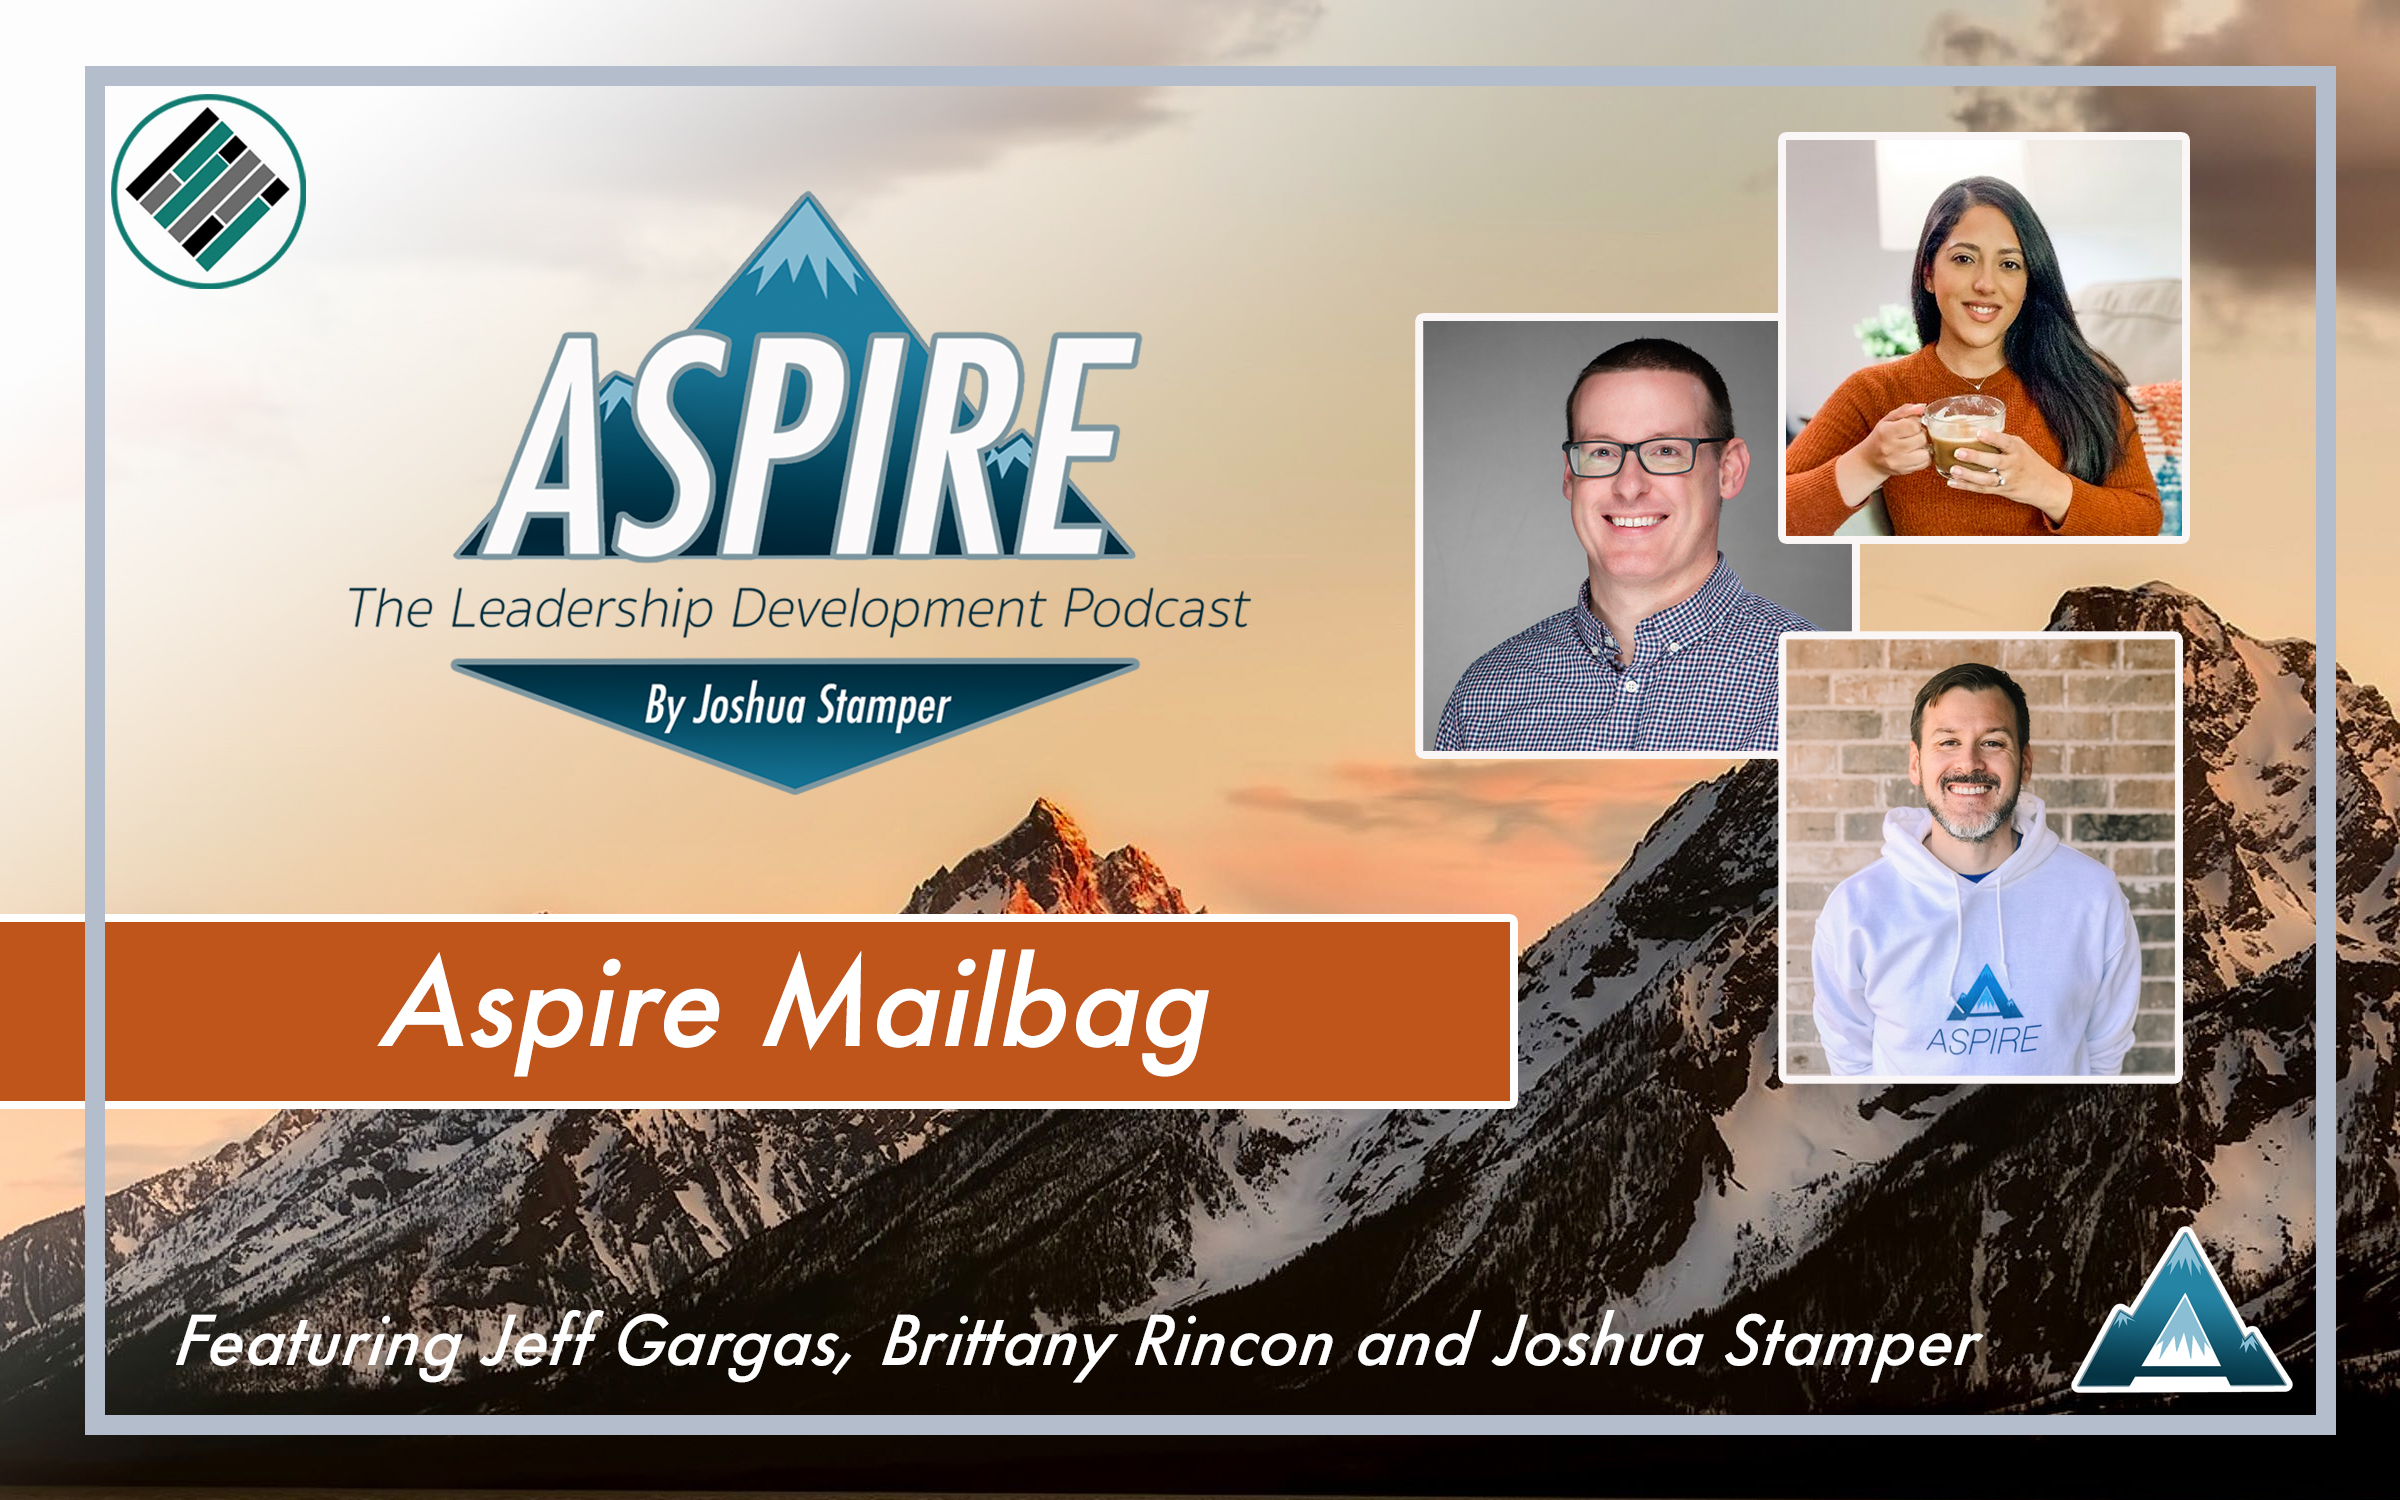 Aspire Mailbag, Aspire: The Leadership Development Podcast, Joshua Stamper, Jeff Gargas, Brittany Rincon, #AspireLead